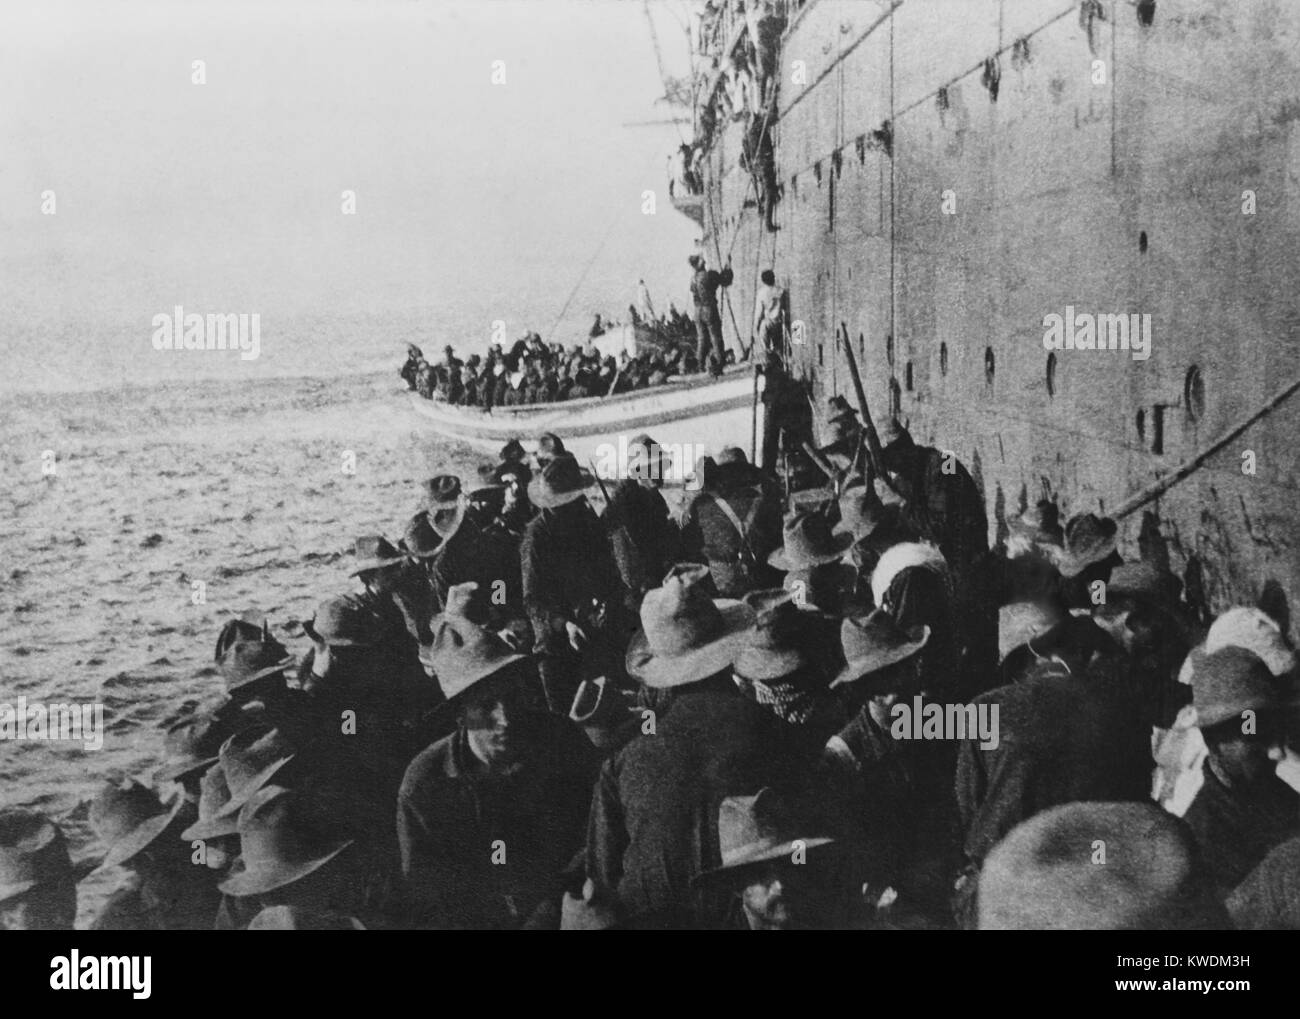 Amphibious landing at Arroyo, Puerto Rico, August 3, 1898 during the Spanish American War. US soldiers of Company - Stock Image